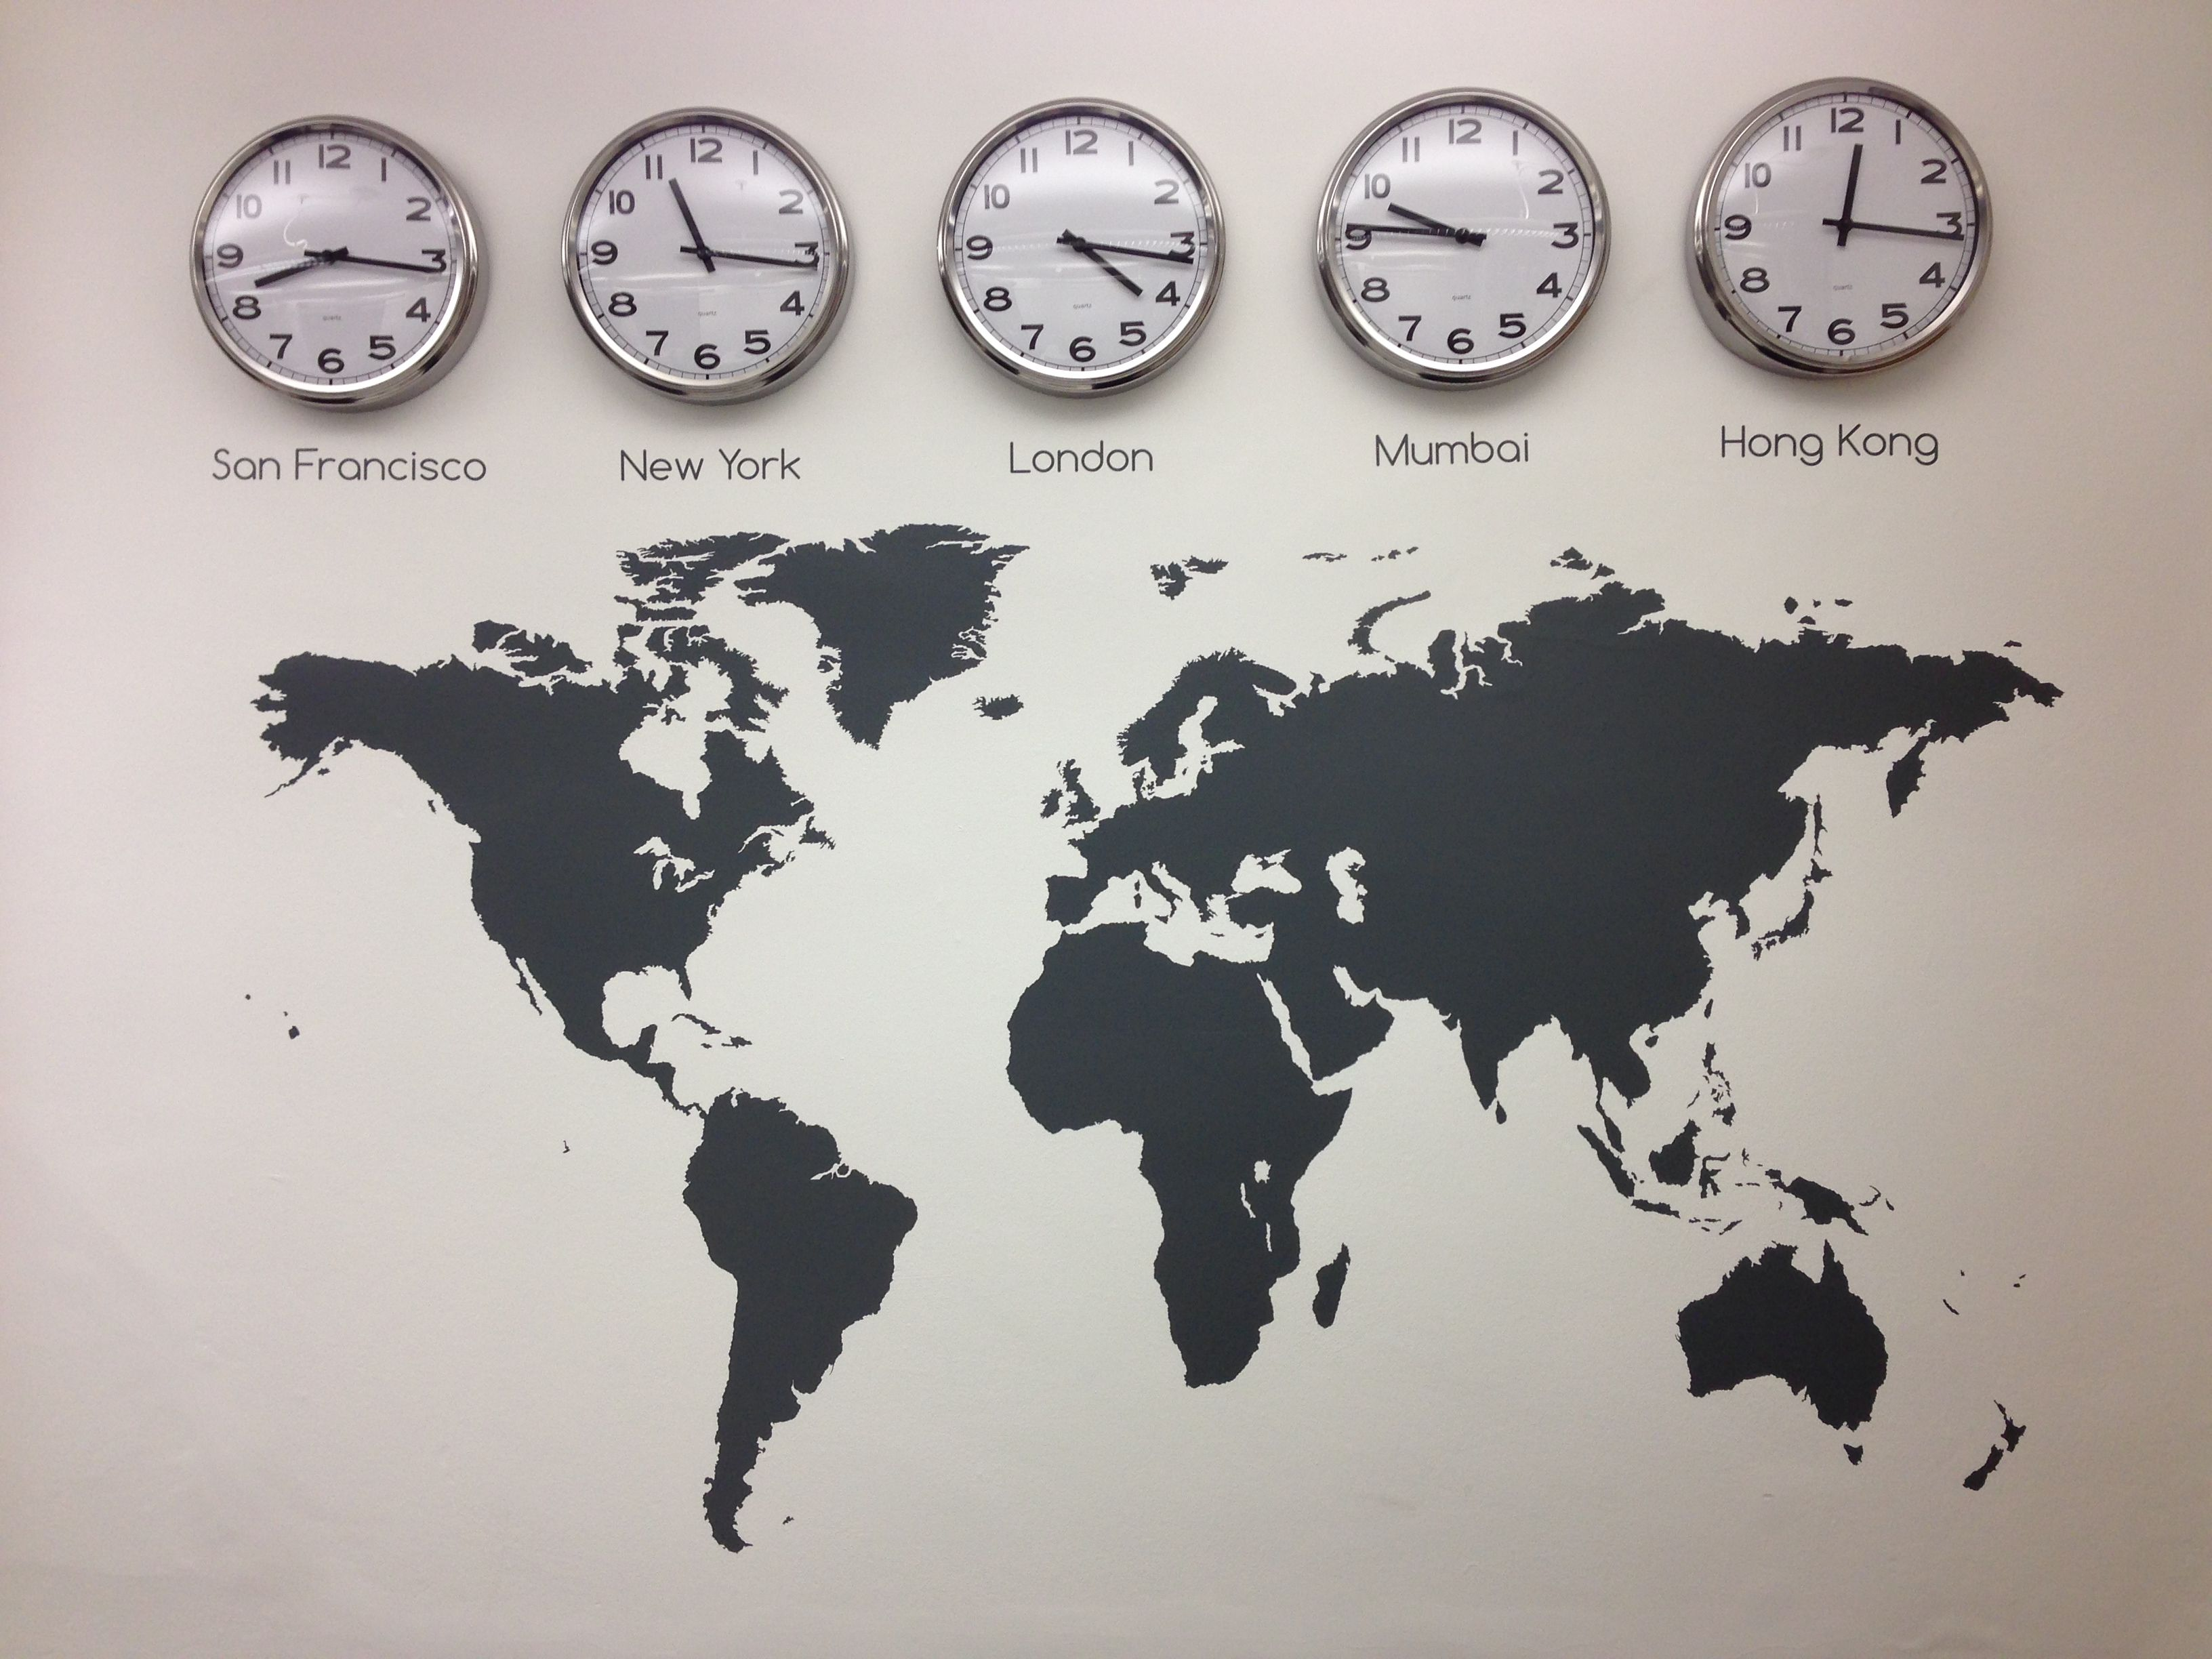 17 Best ideas about Time Zone Clocks on Pinterest | Travel room ...